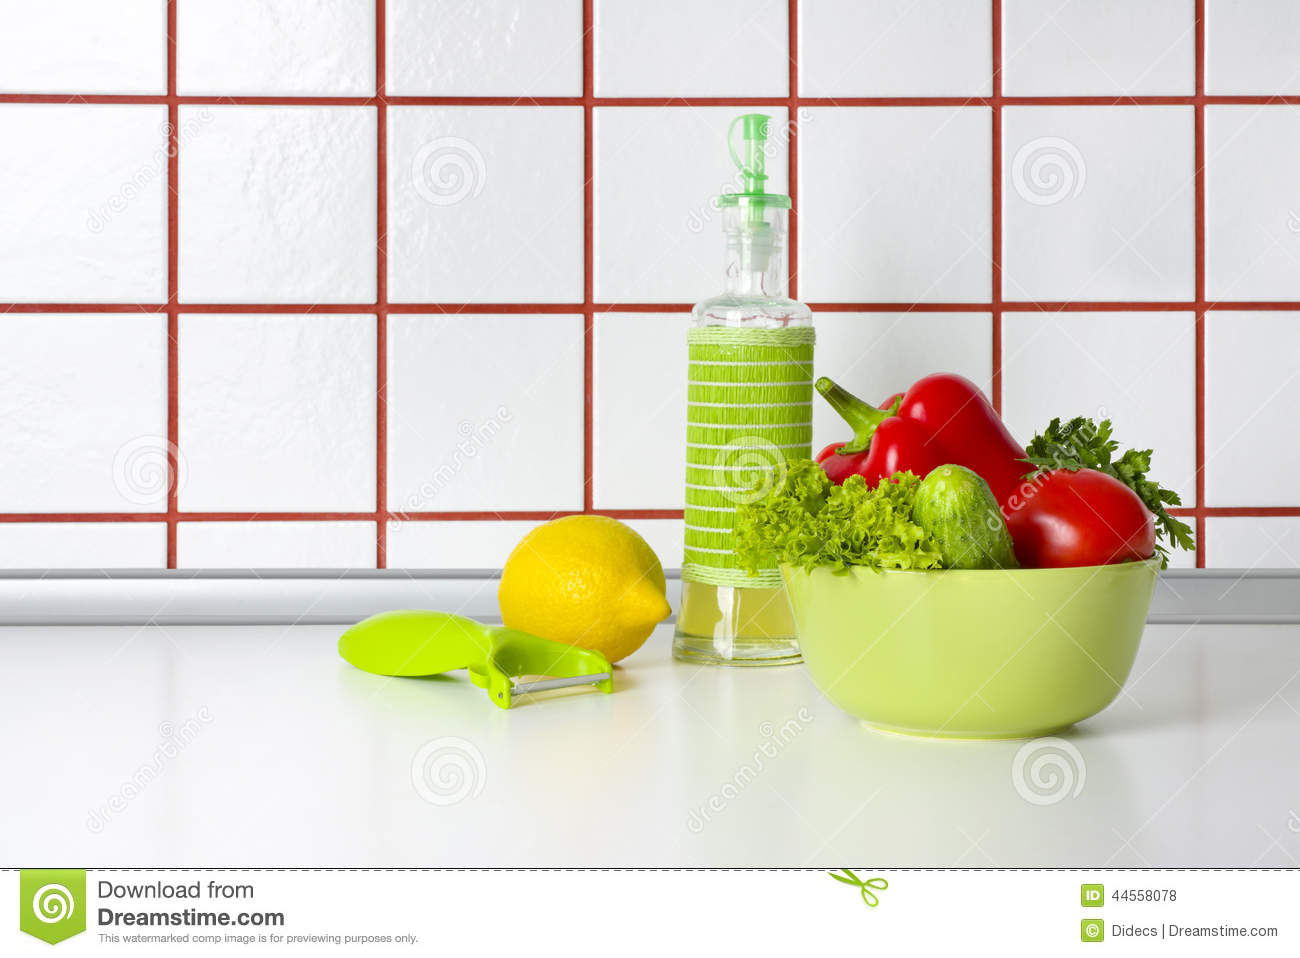 Kitchen Counter Background Vegetables Oil And Scraper On Kitchen Counter Background Stock